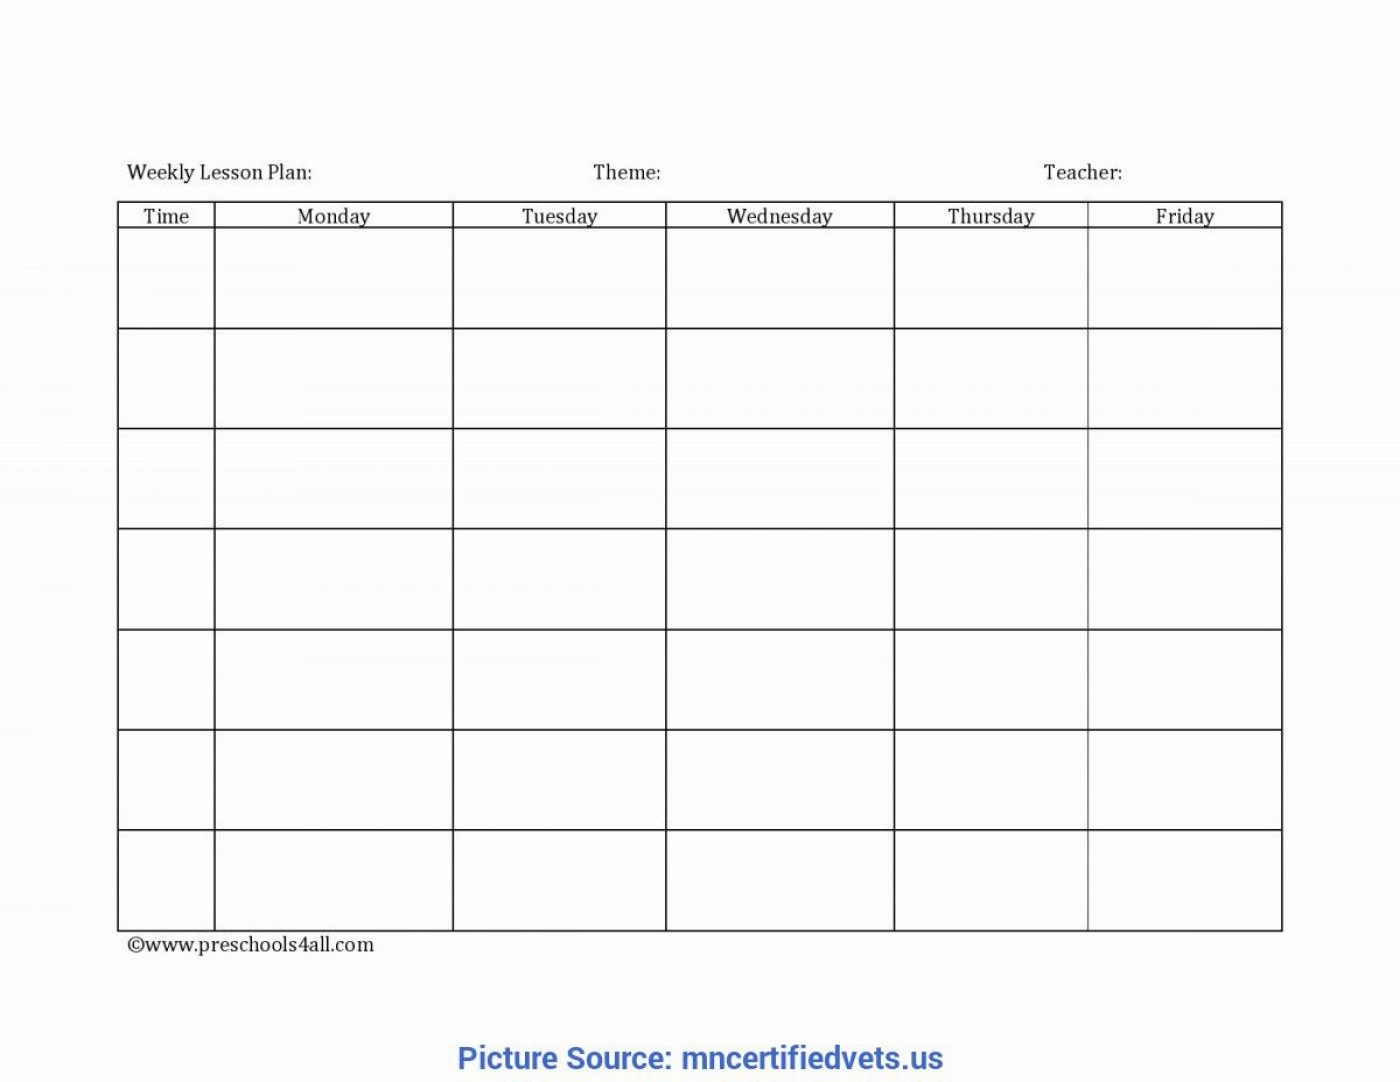 006 Unbelievable Weekly Lesson Plan Template Photo  Editable Preschool Pdf Google Sheet1400